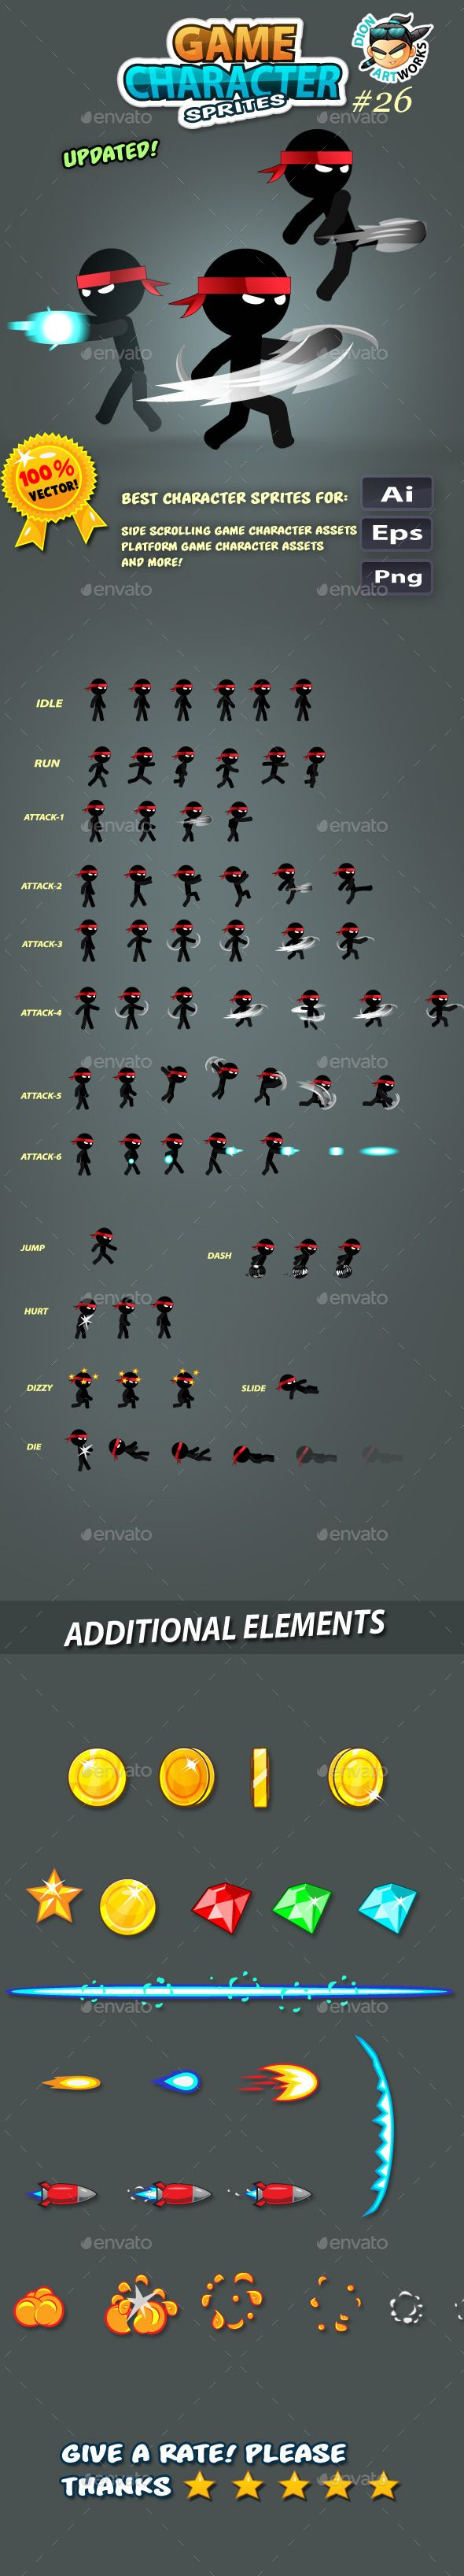 Ninja Stickman Game Character Sprites 26 — Vector EPS #medival #stick • Available here → https://graphicriver.net/item/ninja-stickman-game-character-sprites-26/11433297?ref=pxcr